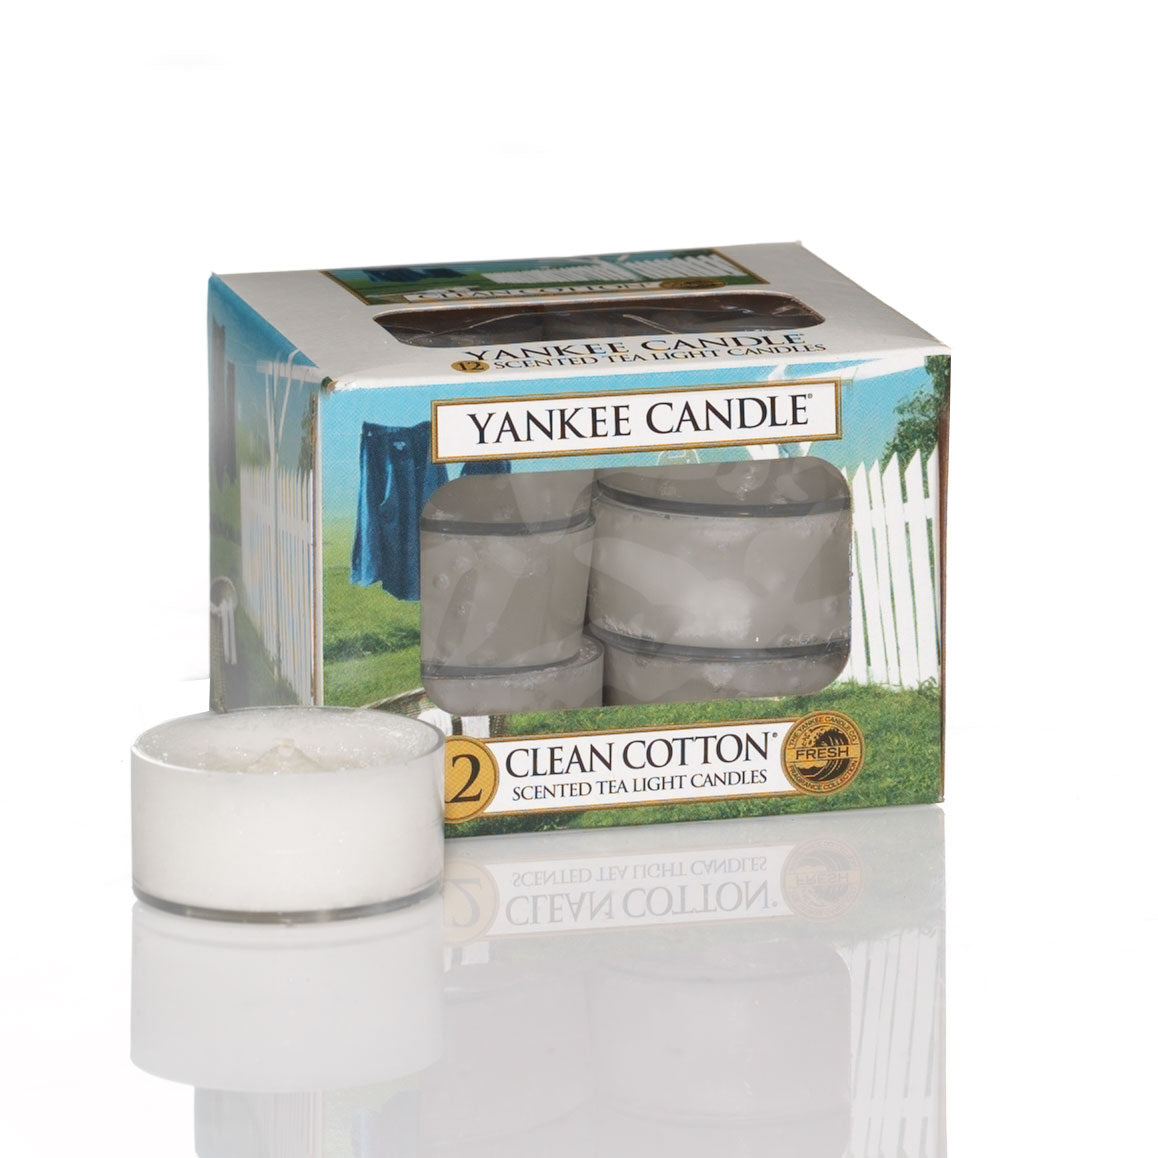 CLEAN COTTON -Yankee Candle- Tea Light